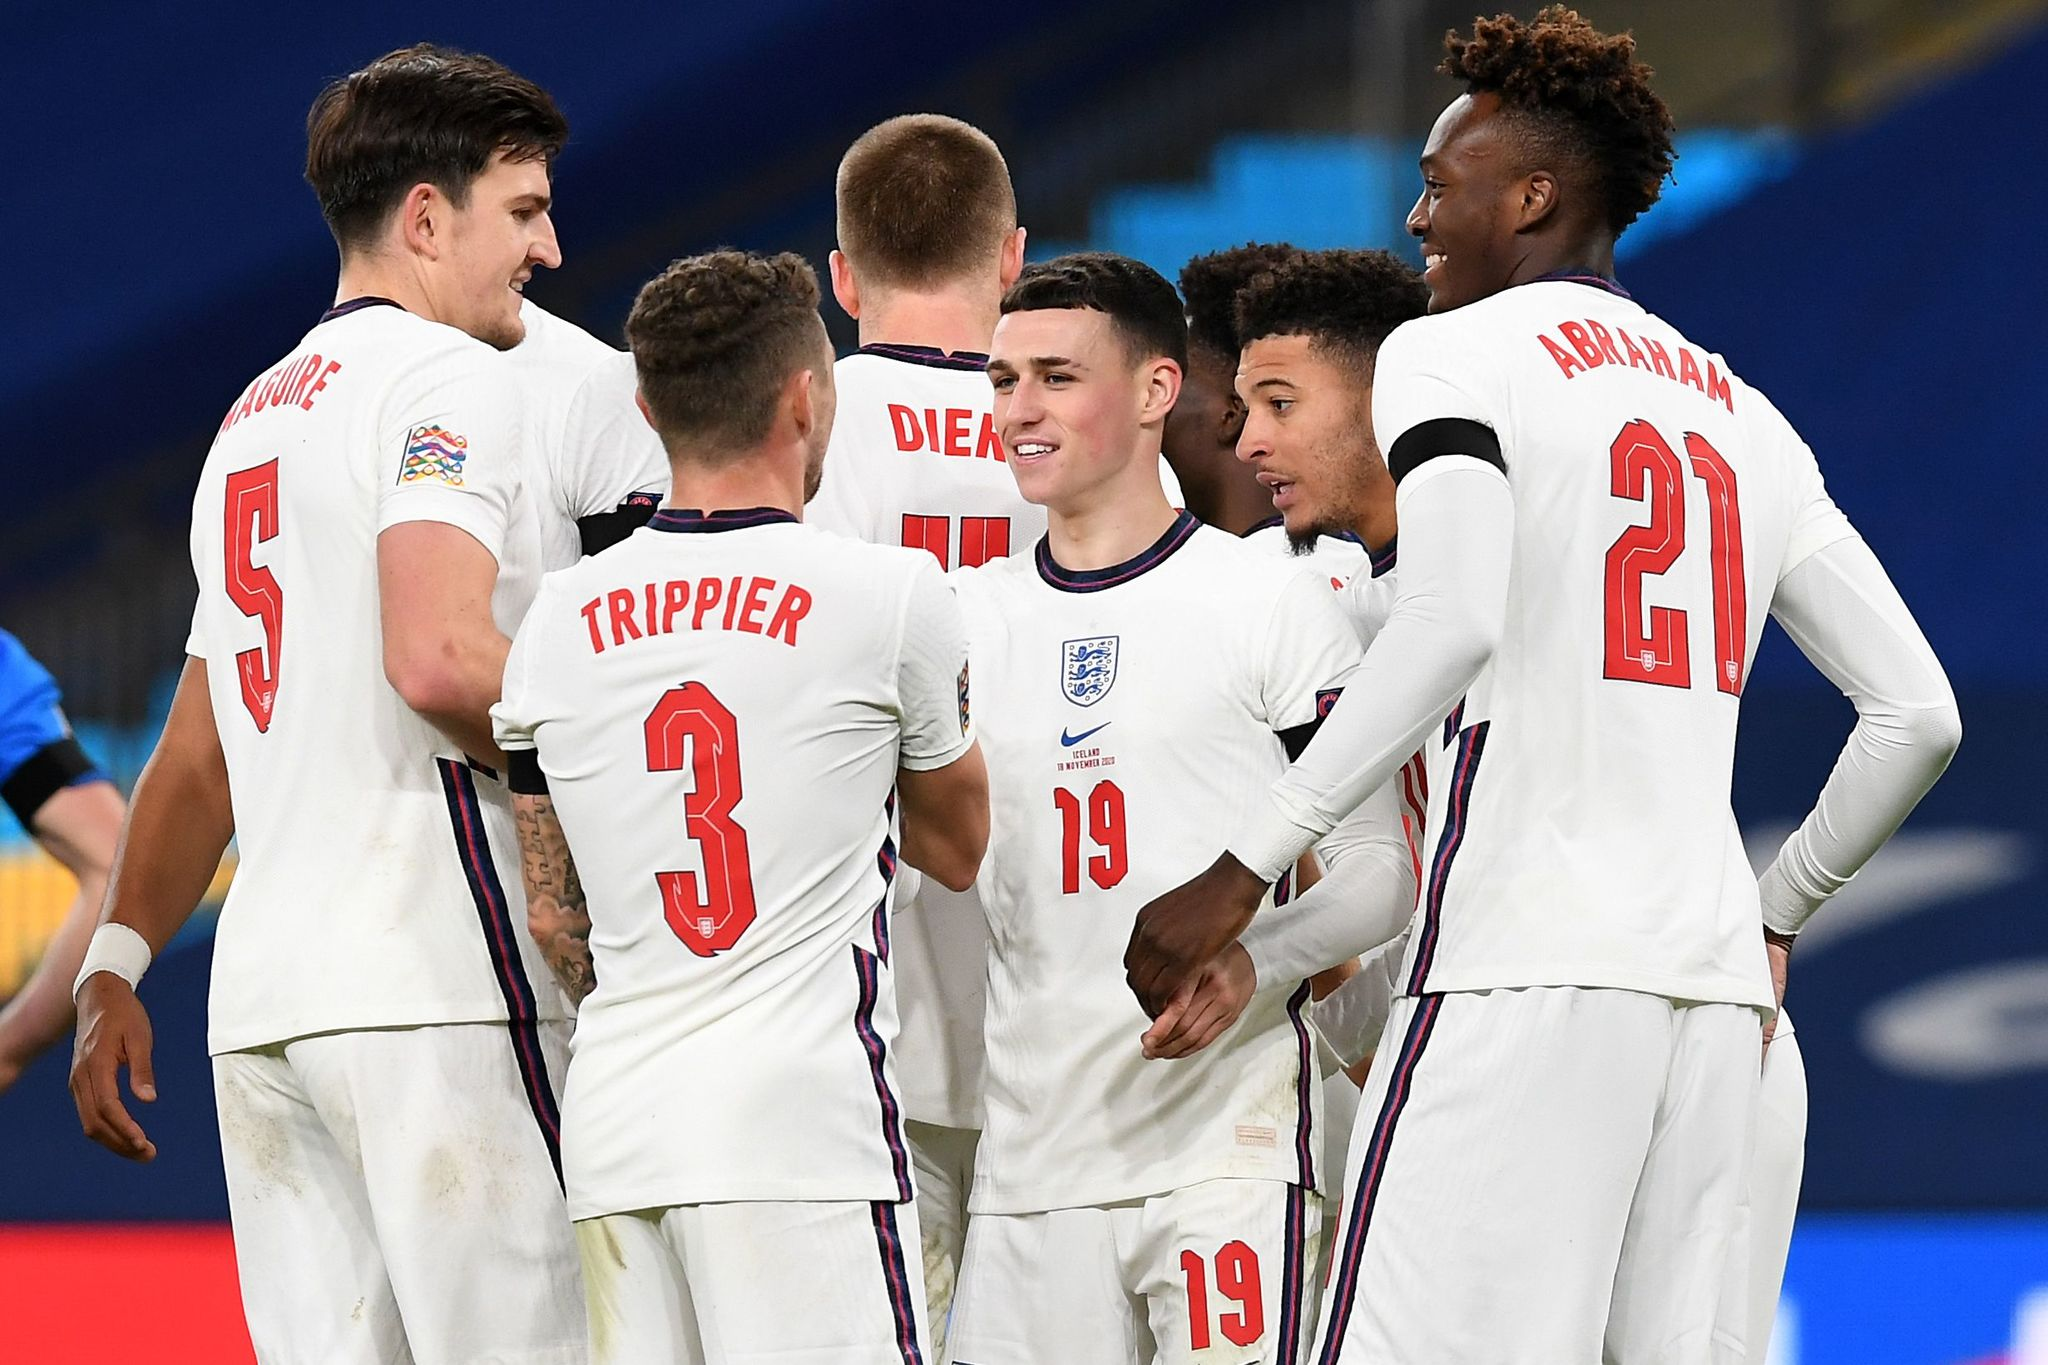 Englandss midfielder Phil lt;HIT gt;Foden lt;/HIT gt; (C) celebrates with team mates after scoring his teams third goal during the UEFA Nations League group A2 football match between England and Iceland at Wembley stadium in north London on November 18, 2020. (Photo by NEIL HALL / POOL / AFP) / NOT FOR MARKETING OR ADVERTISING USE / RESTRICTED TO EDITORIAL USE